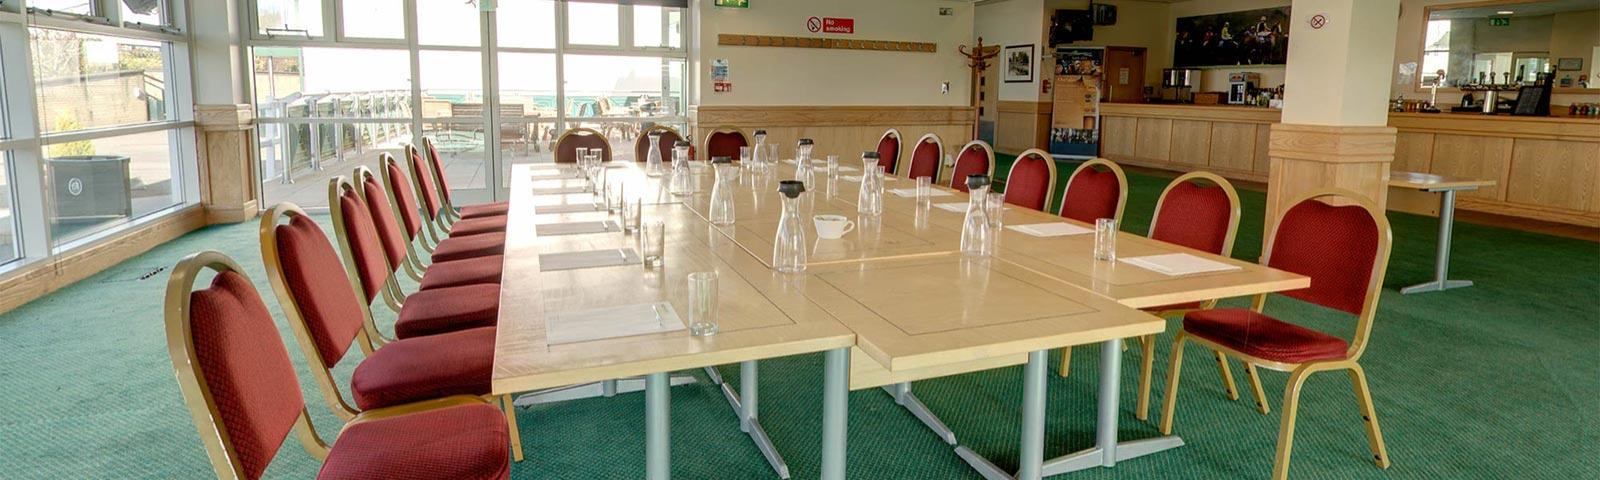 A set of tables joined together in a boardroom style within the Owners and Trainers Suite at Chepstow Racecourse.